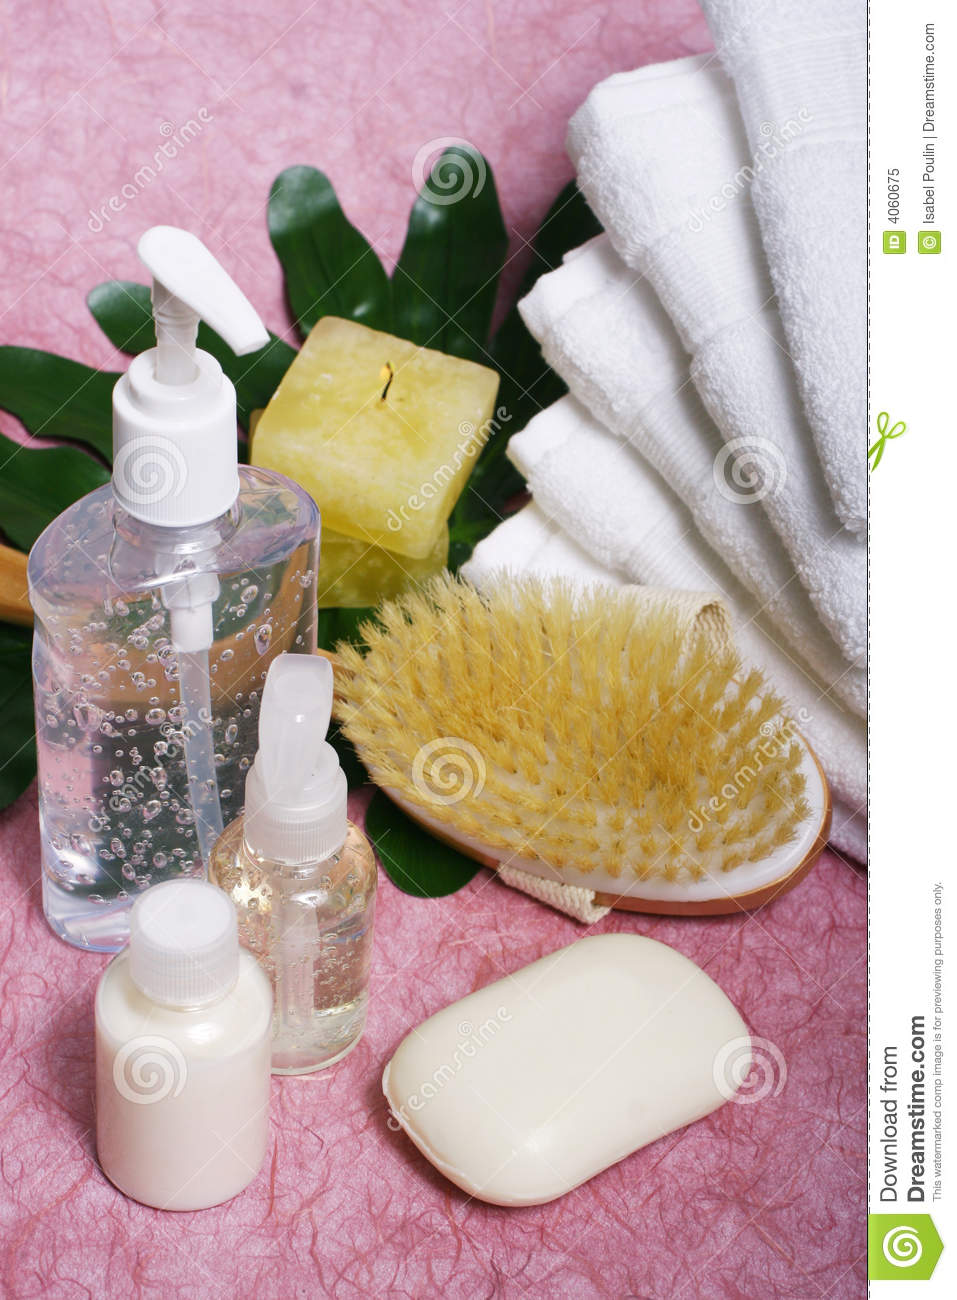 Bathroom items composition royalty free stock photo for Bathroom things